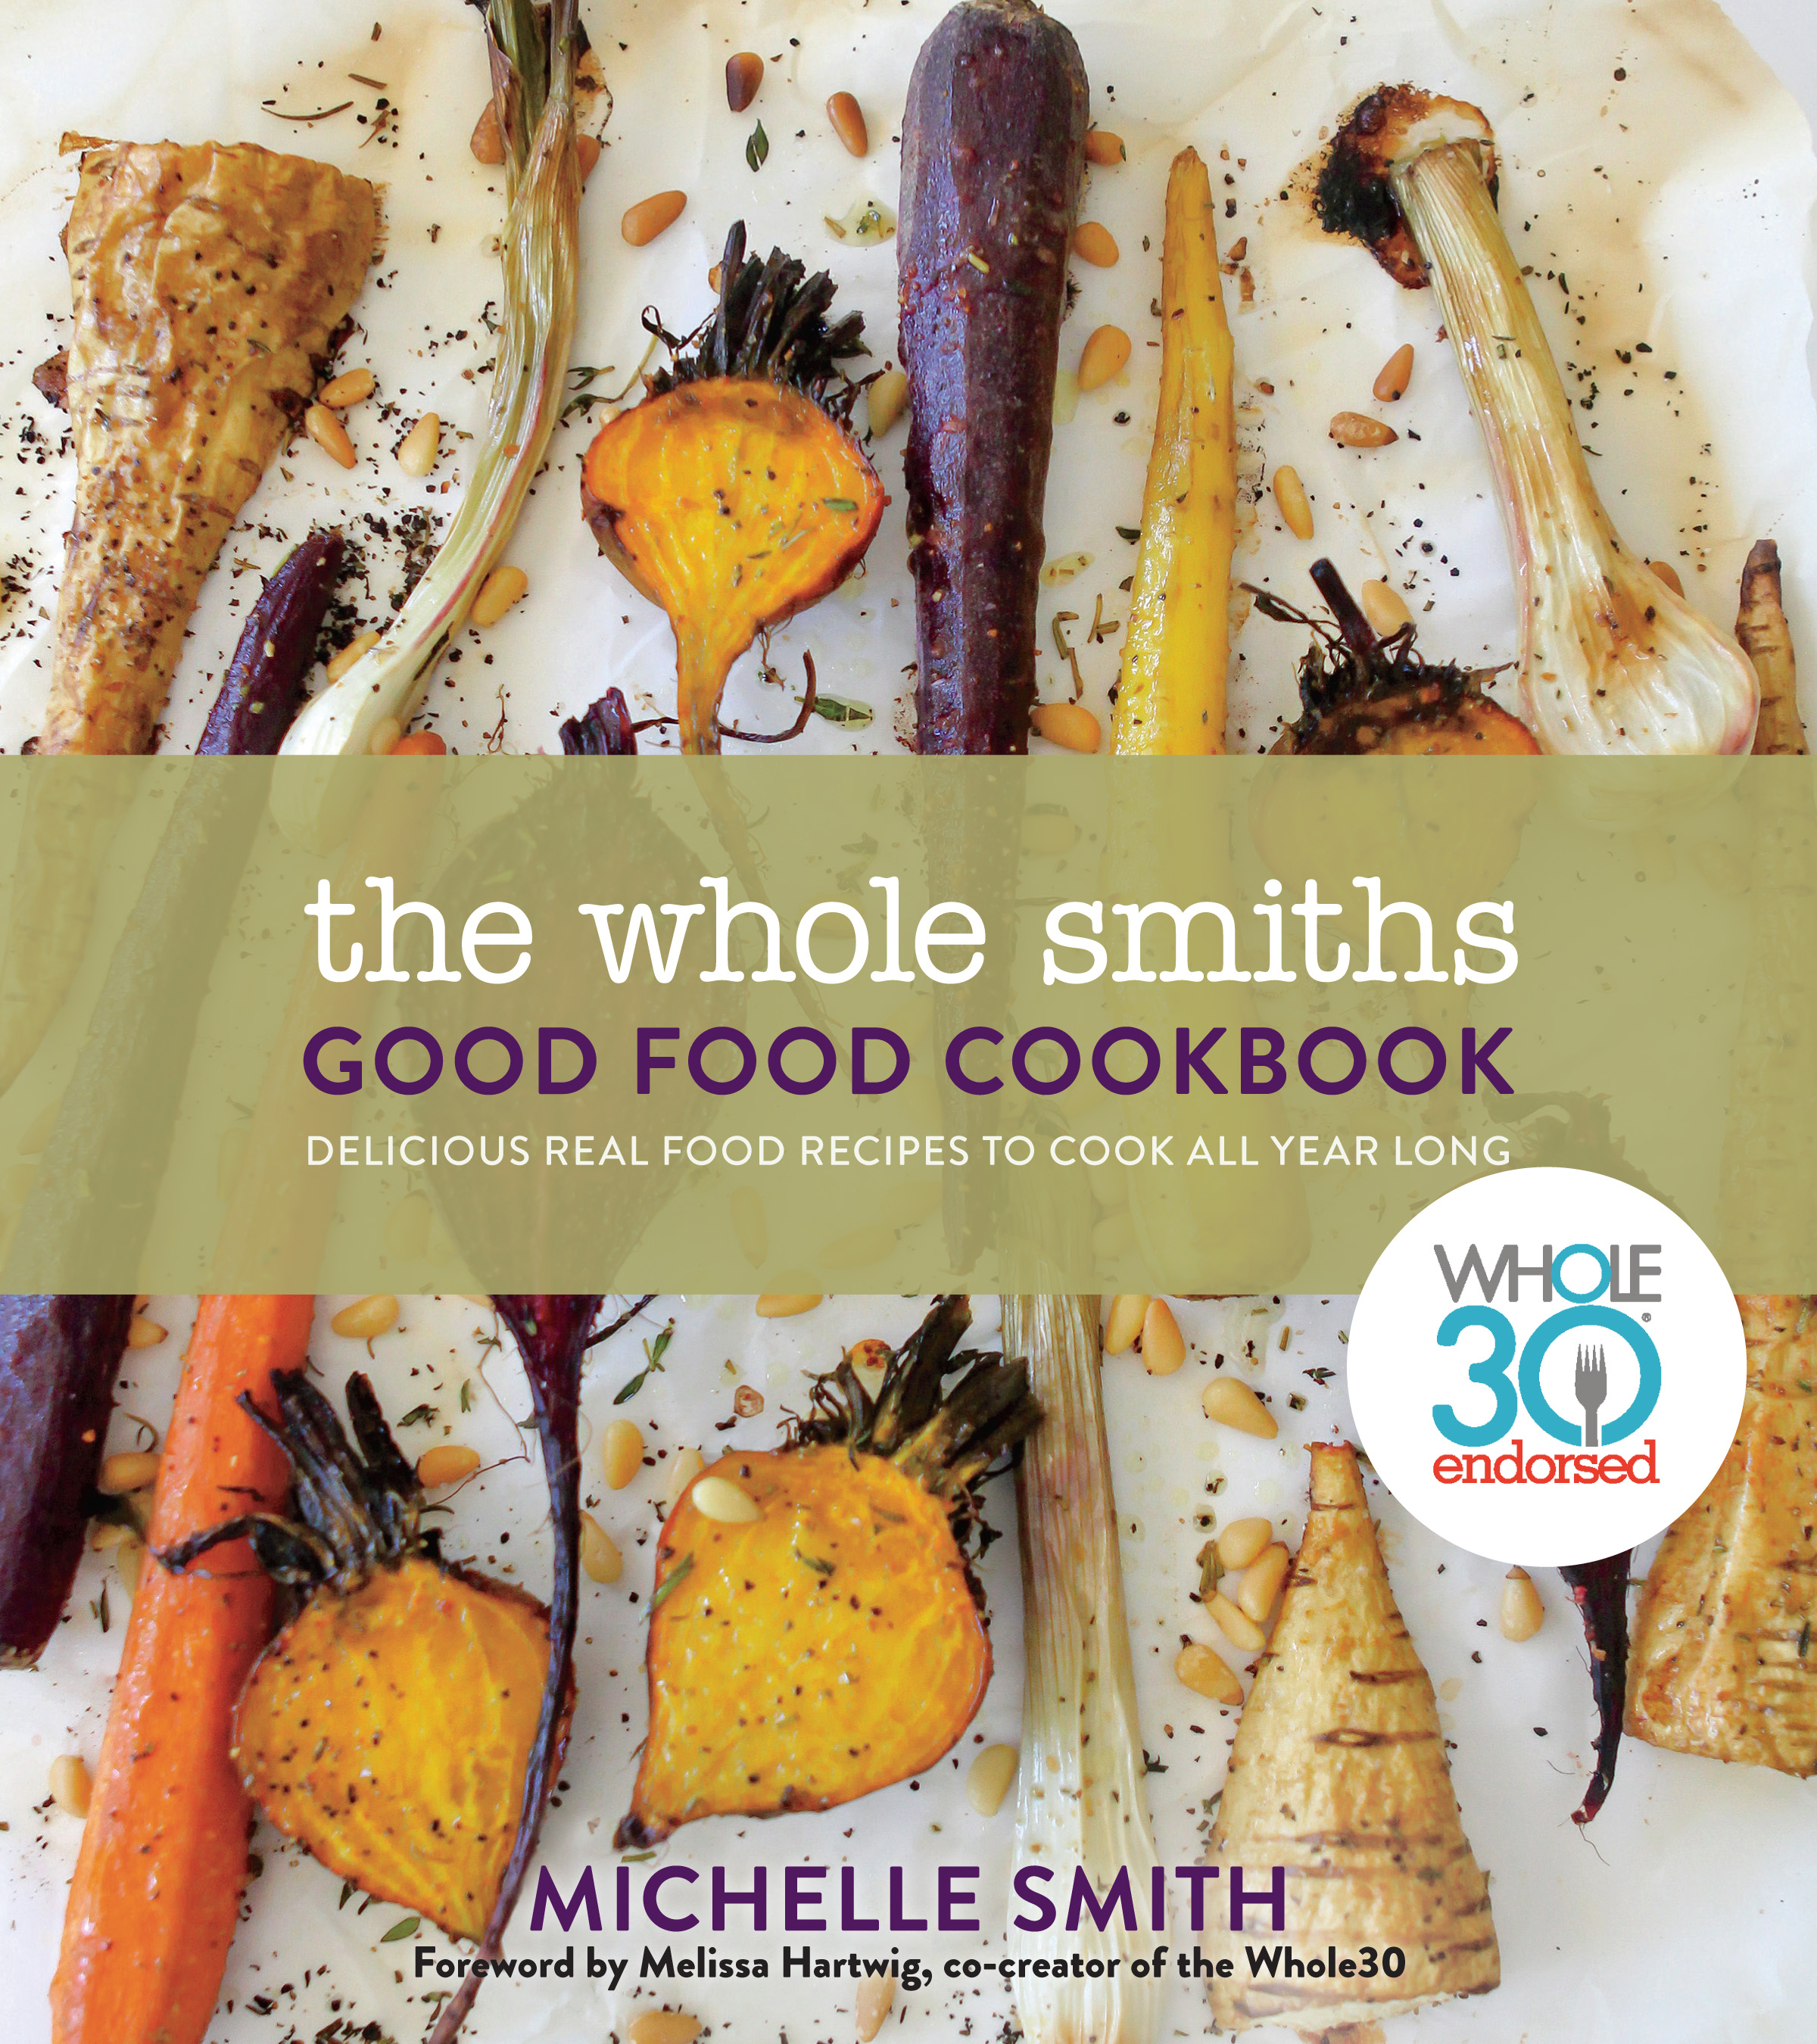 The Whole Smiths Good Food Cookbook is Whole30 Endorsed and great for everyday life after your Whole30 or anyone looking to clean up their diets a bit.